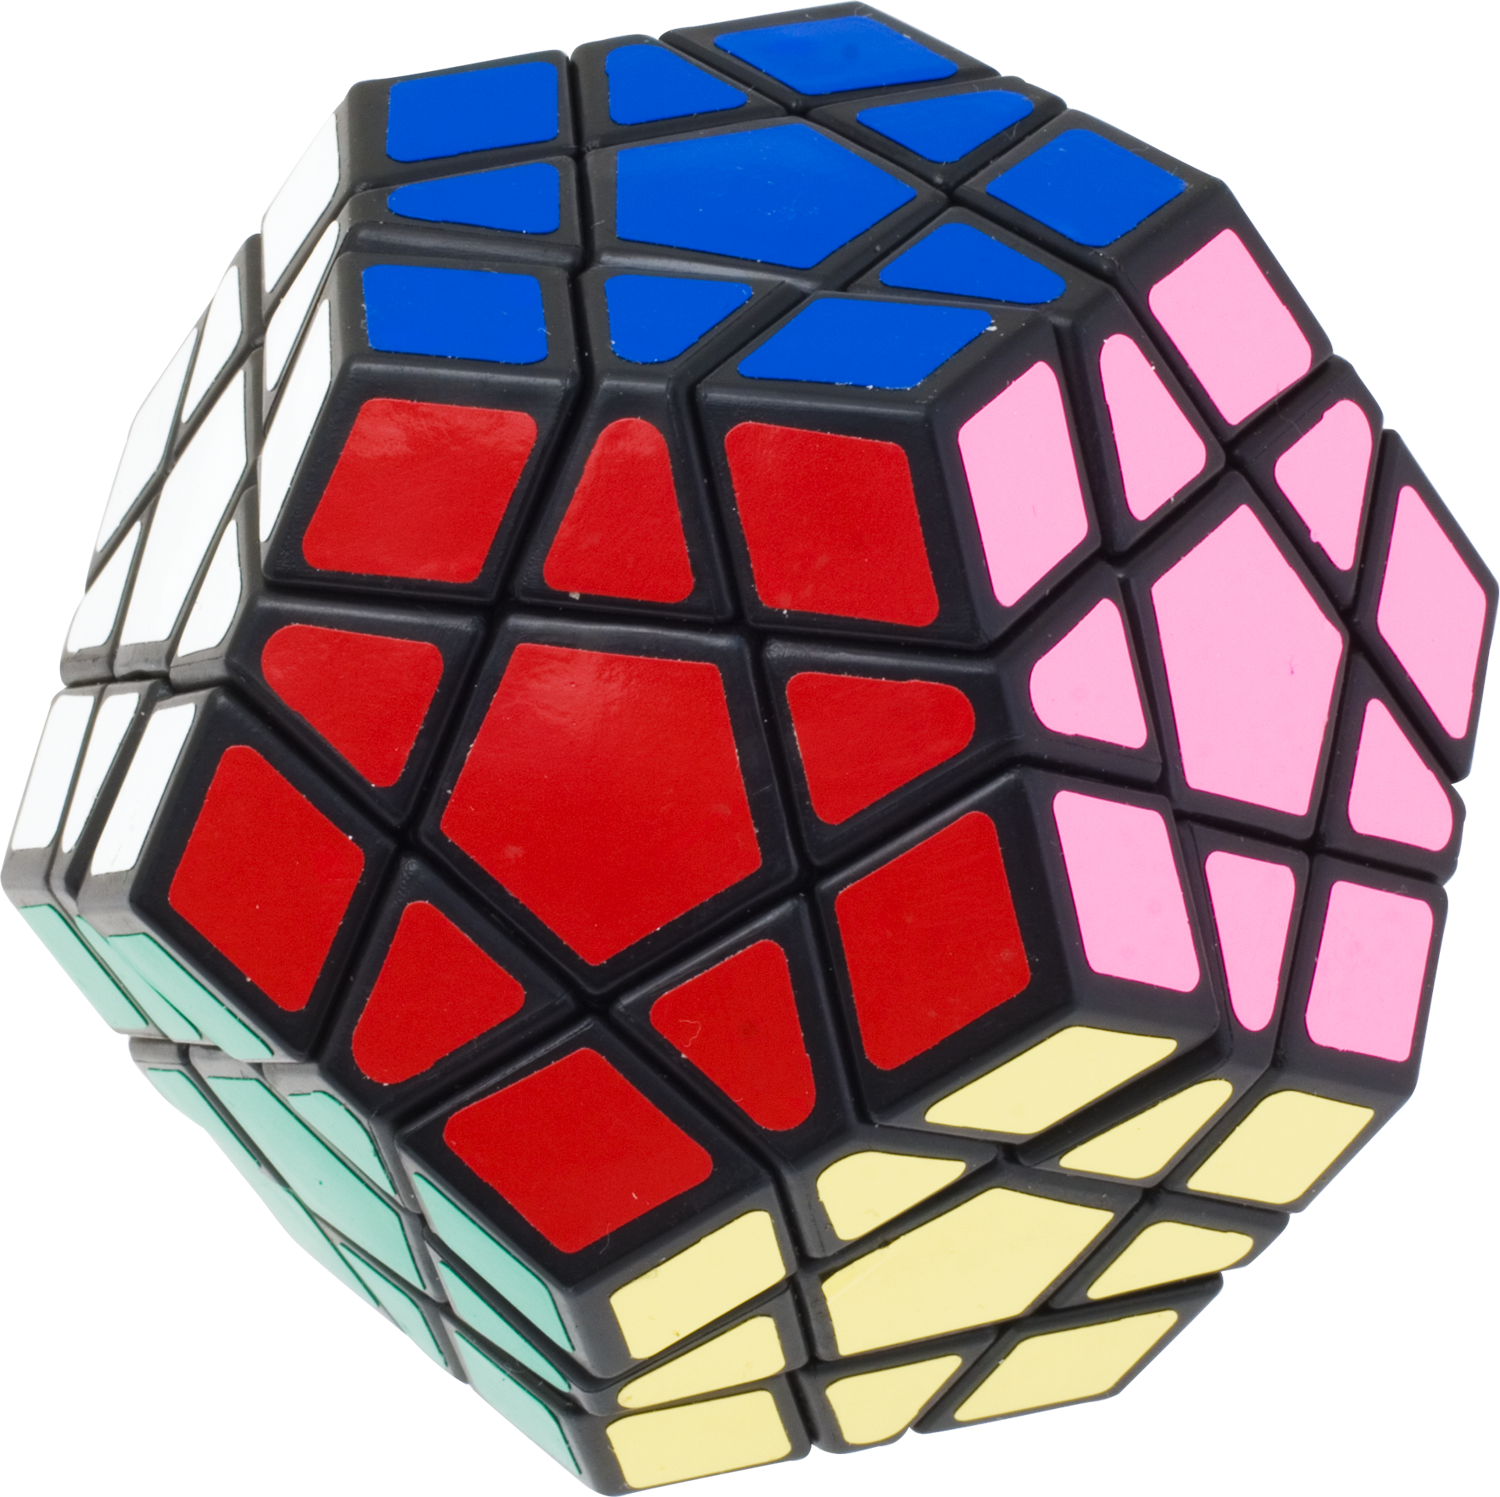 Läs mer om Magic Cube